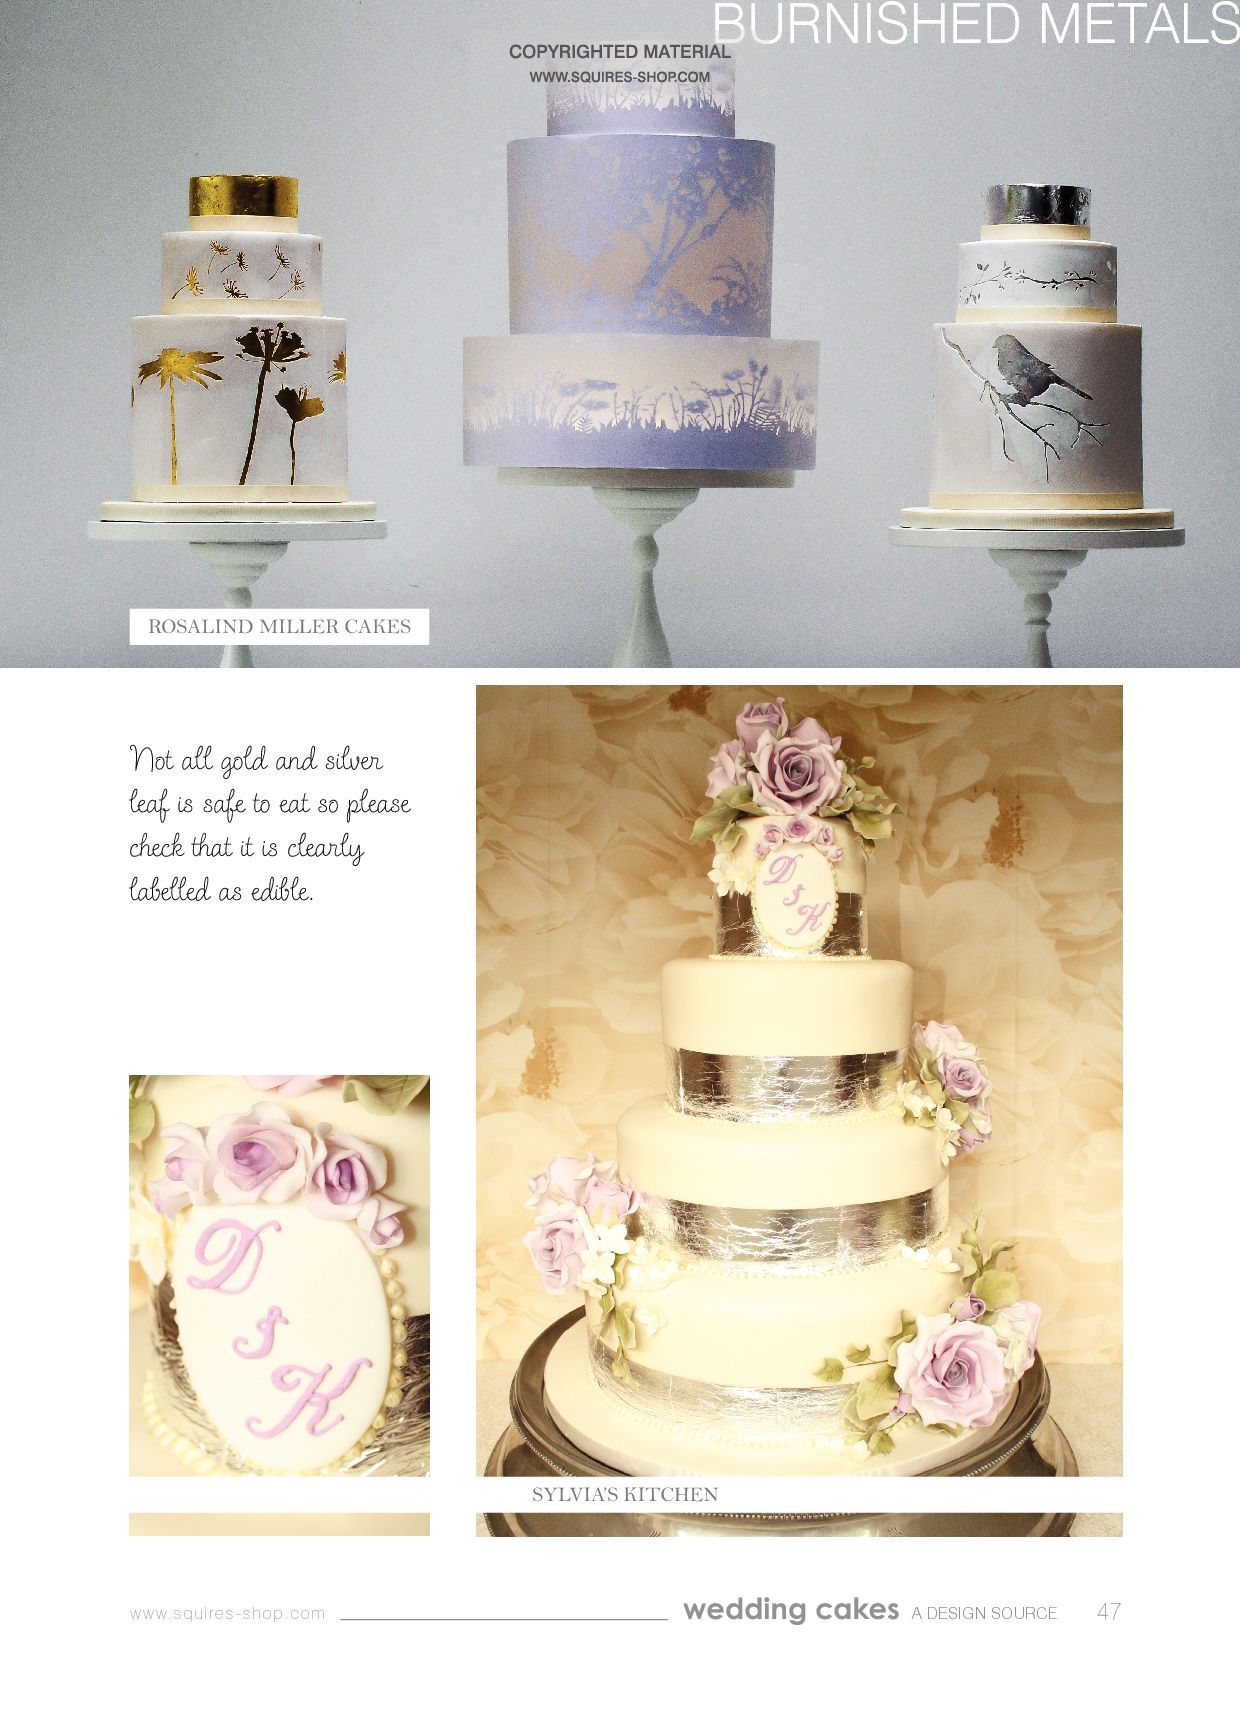 Wedding Cakes Magazine Spring 2014